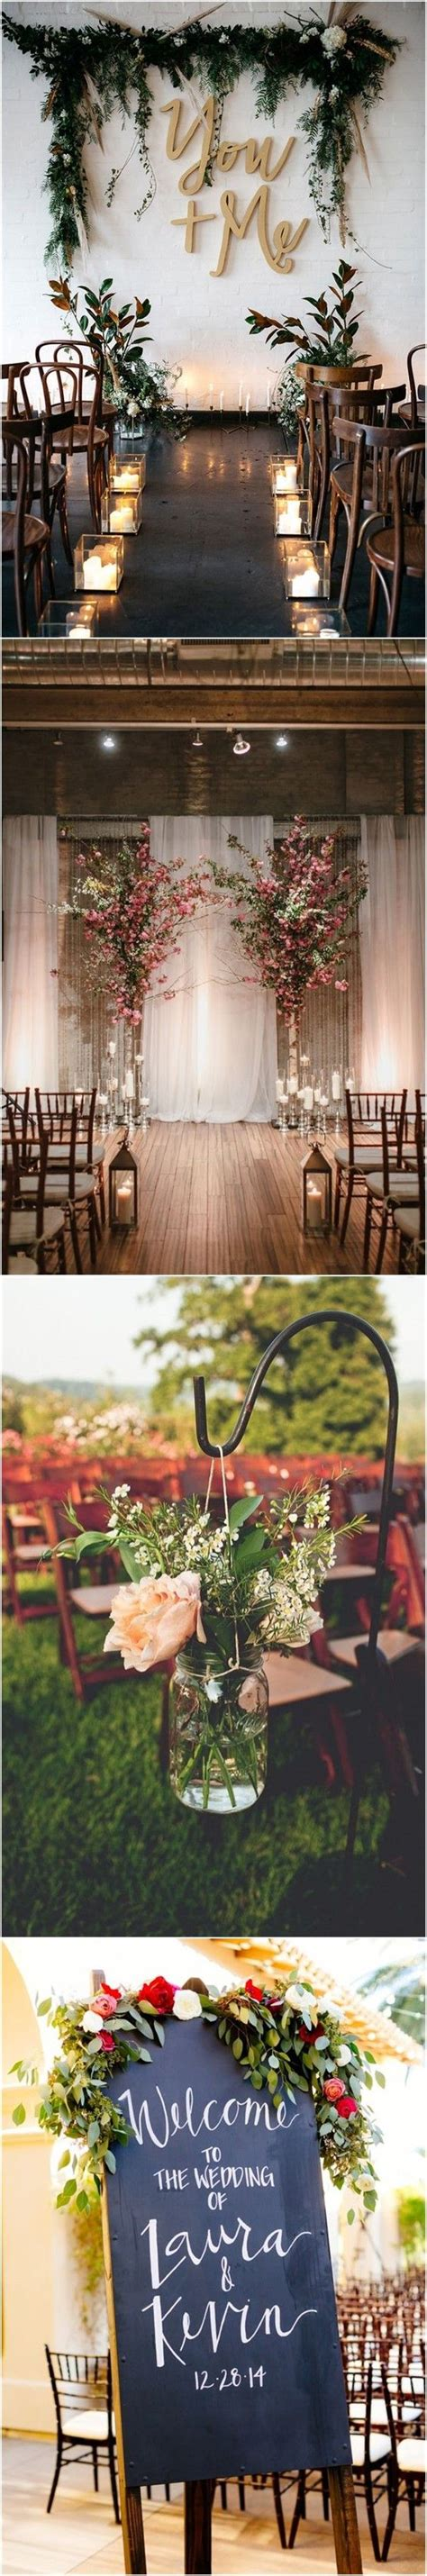 best 25 outdoor weddings ideas on pinterest outdoor